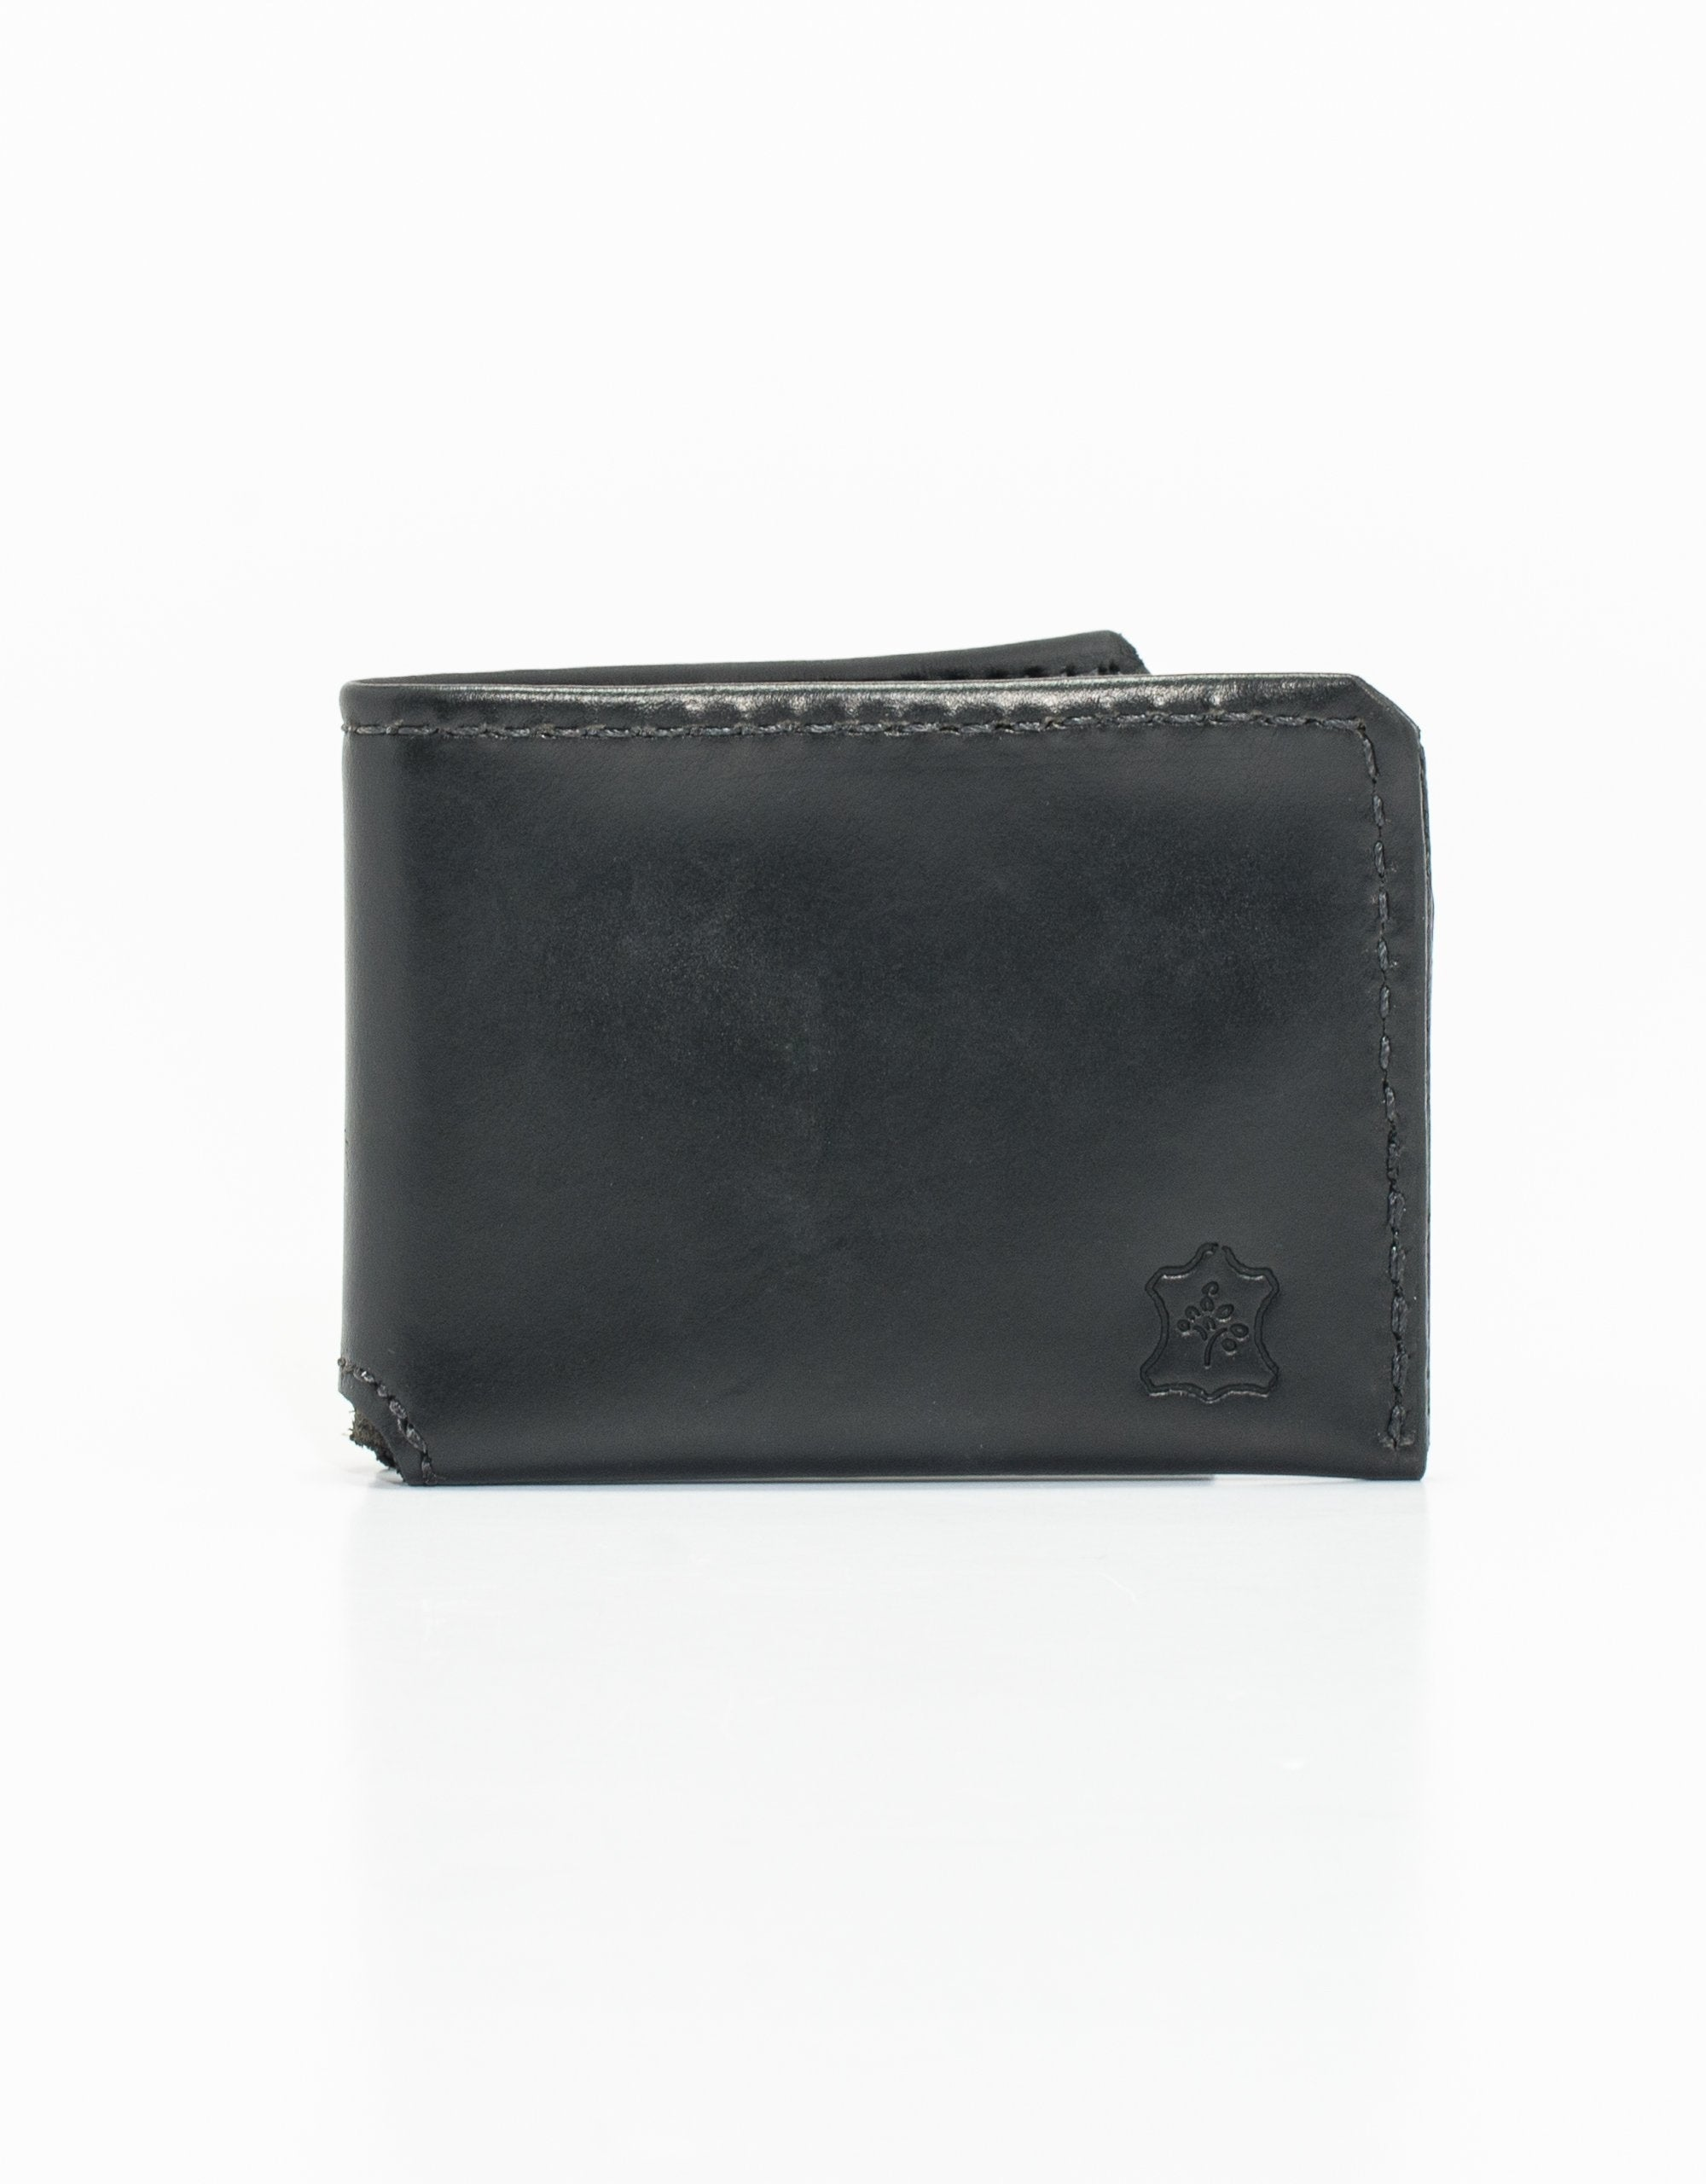 CLASSIC BI-FOLD LEATHER WALLET - BLACK